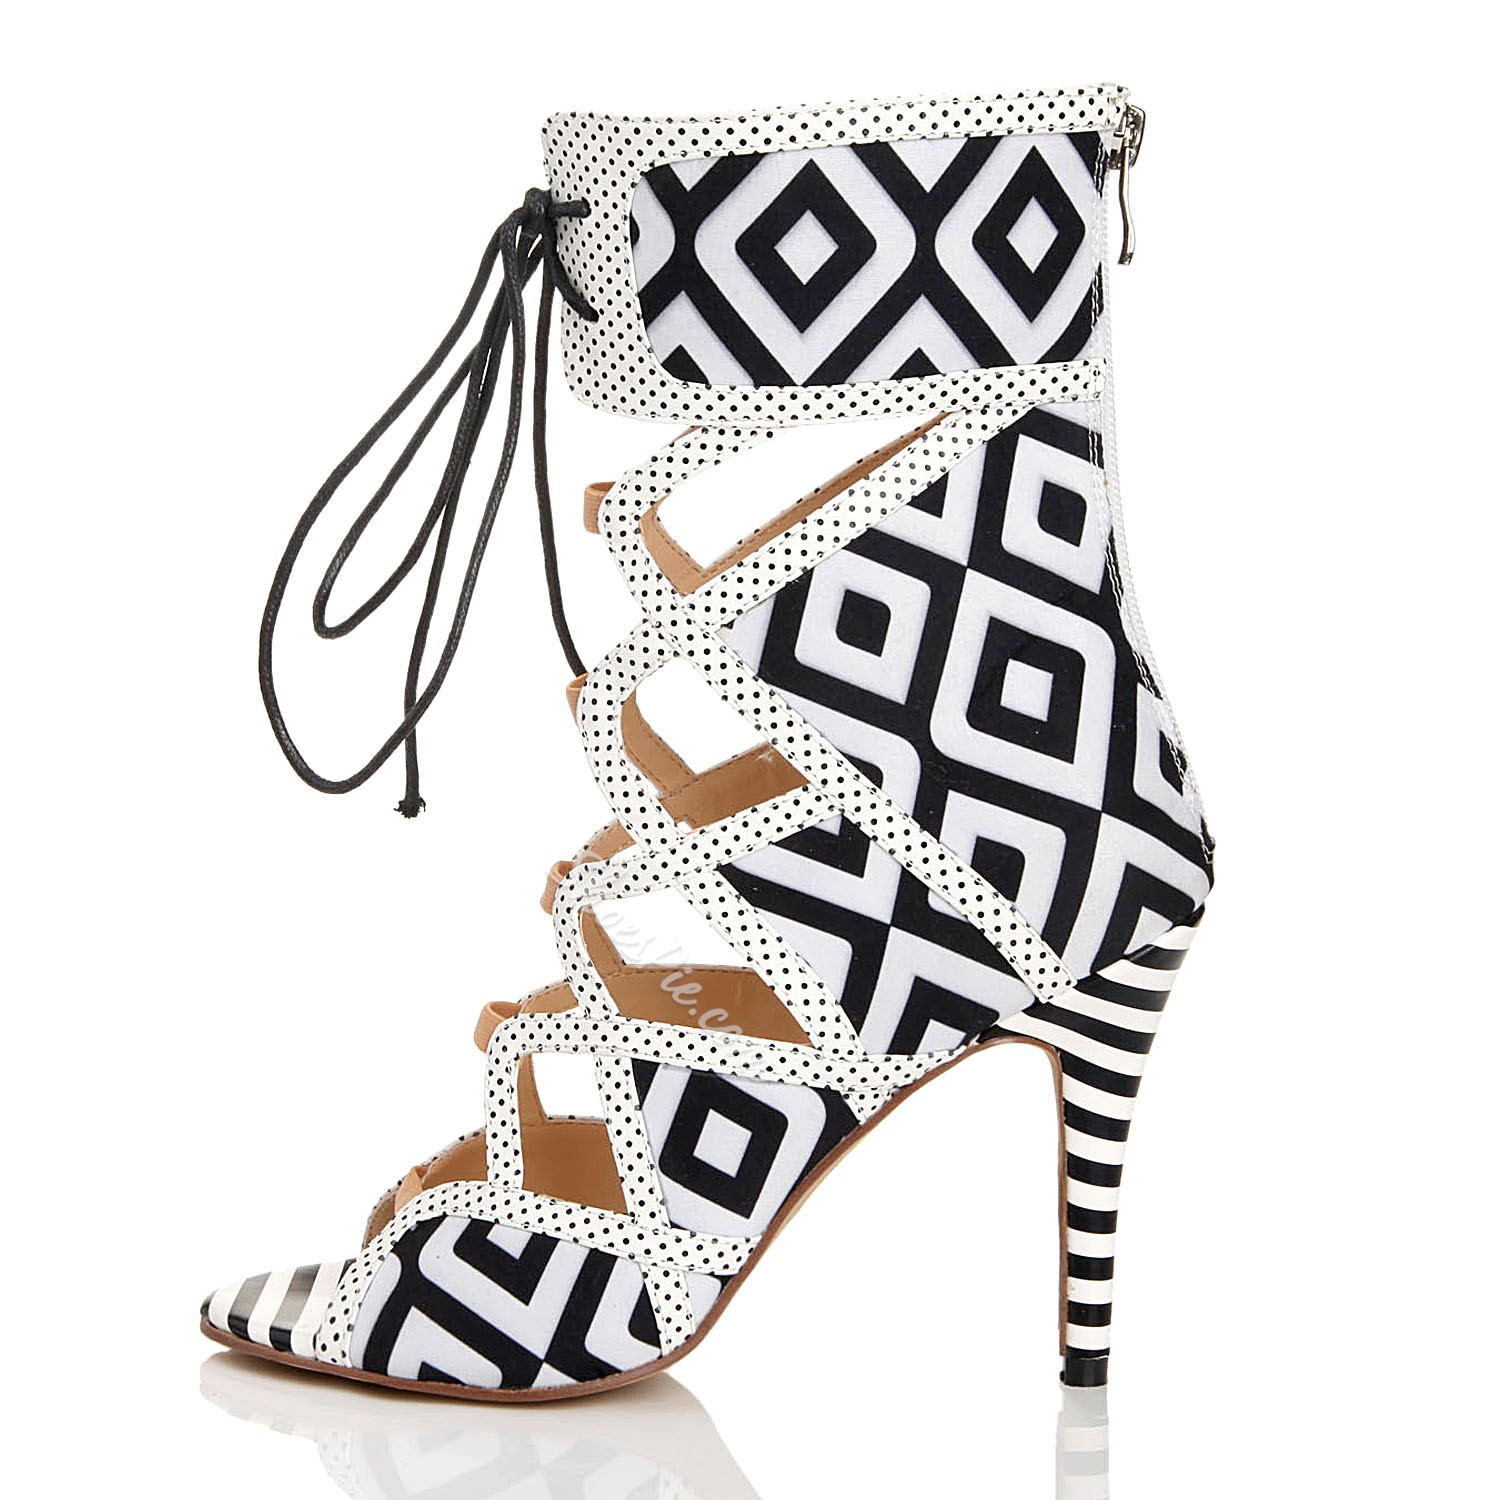 Fashionable Elegant Black & White Cut-Outs Dress Sandals